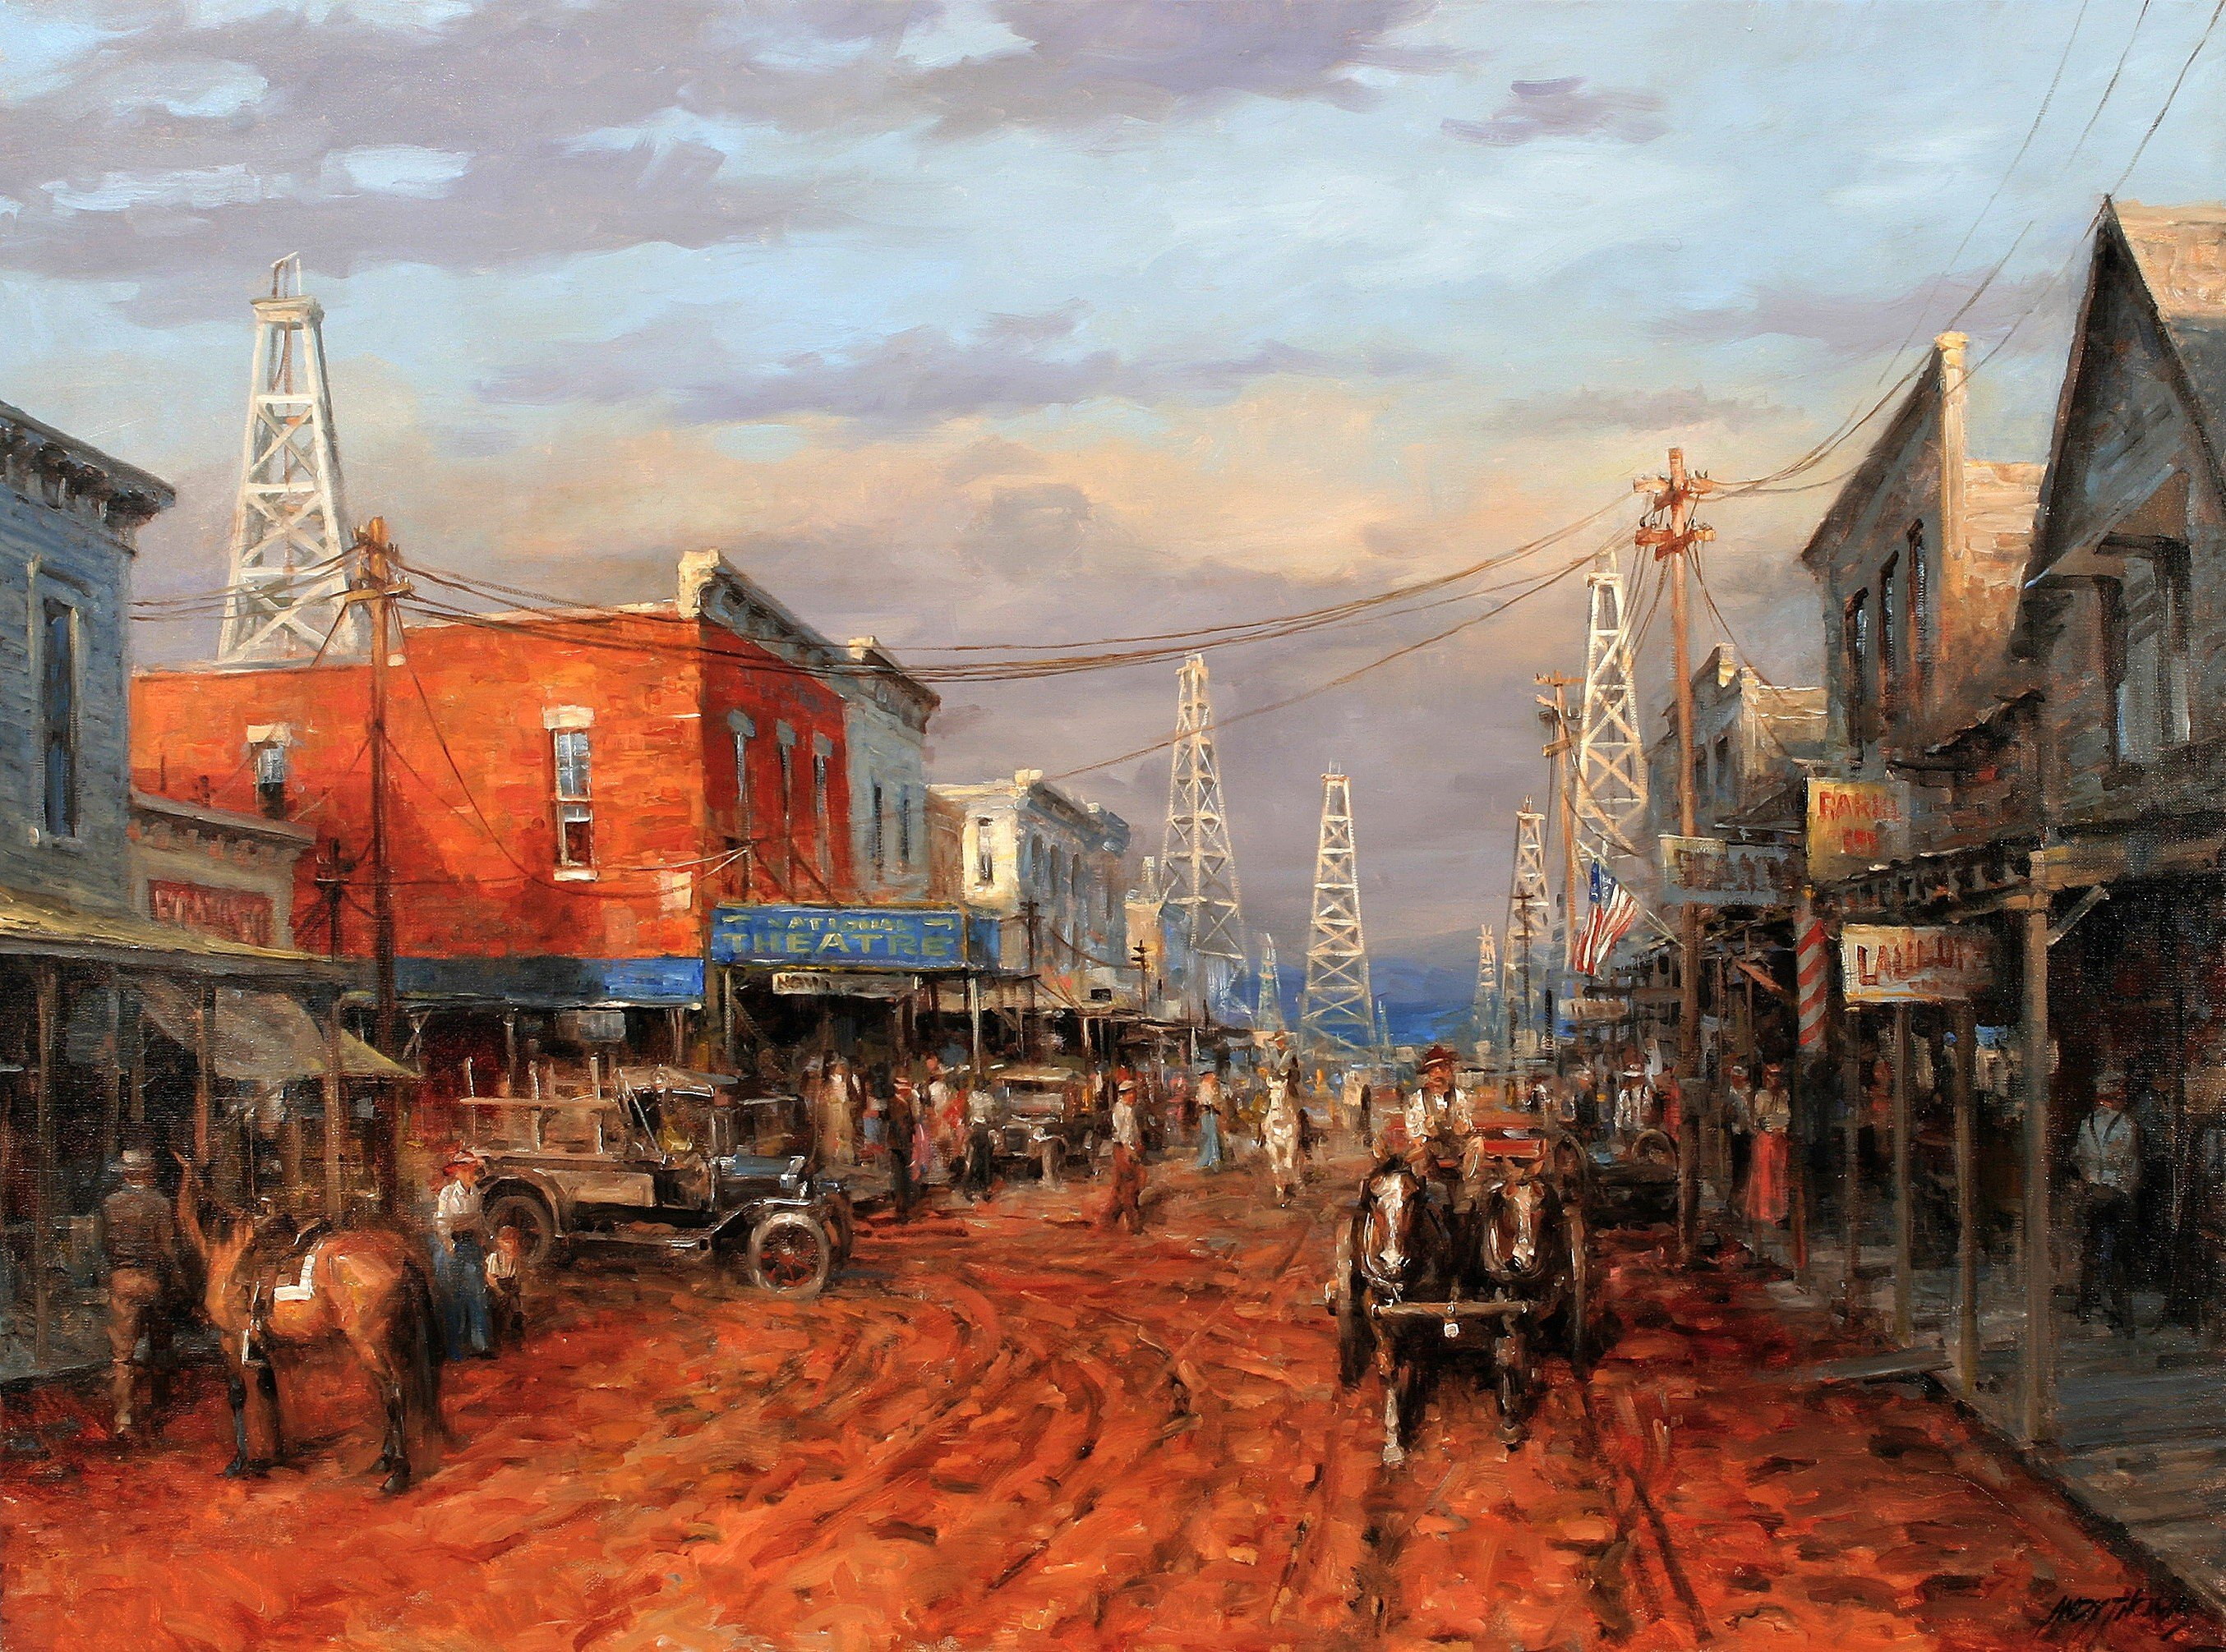 western town background - photo #24